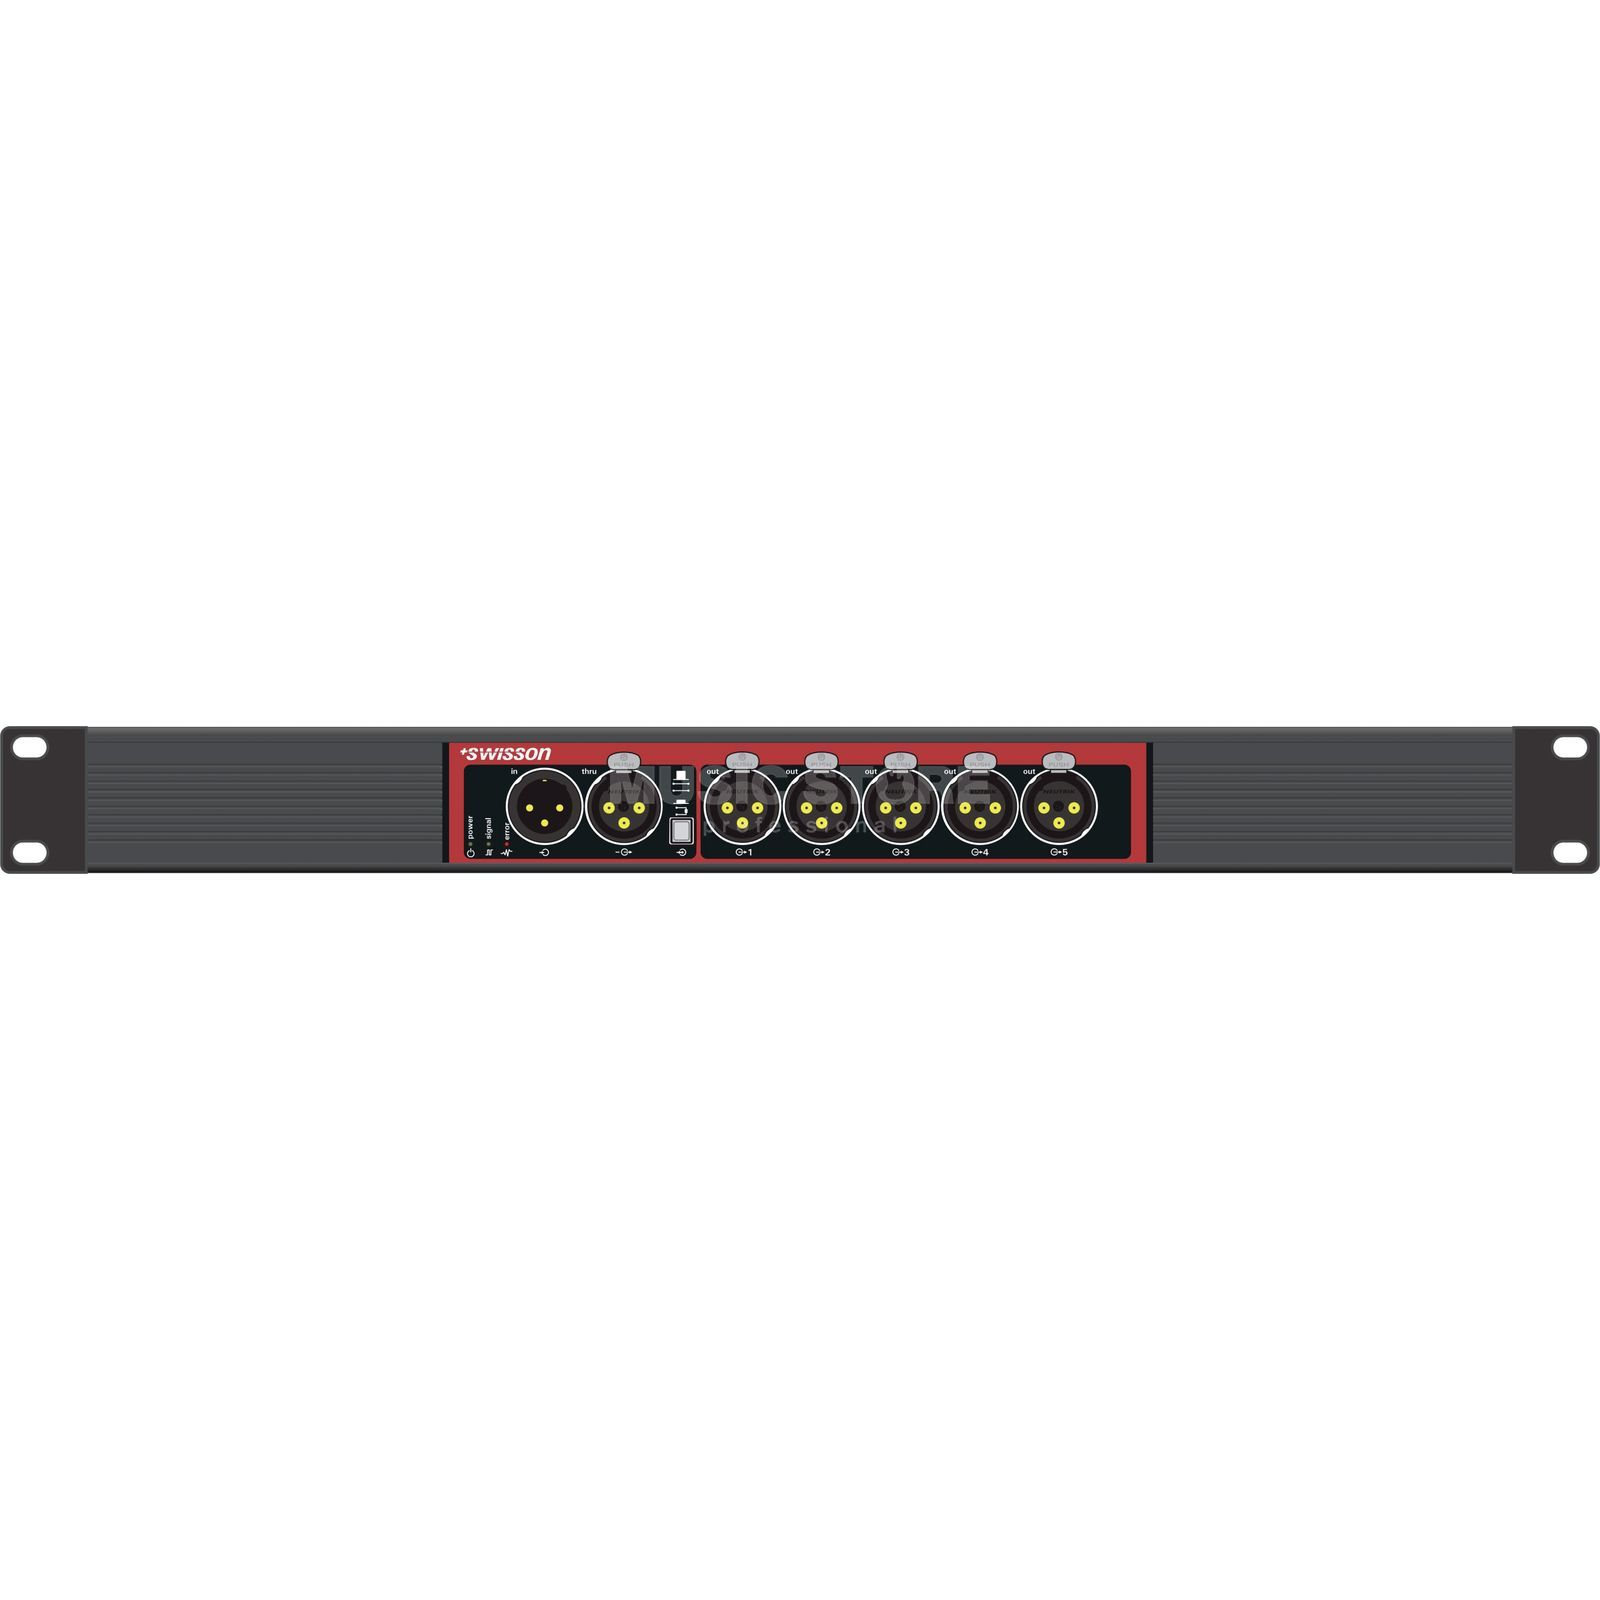 "Swisson X-SP-3R DMX Splitter Single 19"", 3pole in/3 thru/5x3pole out Produktbillede"